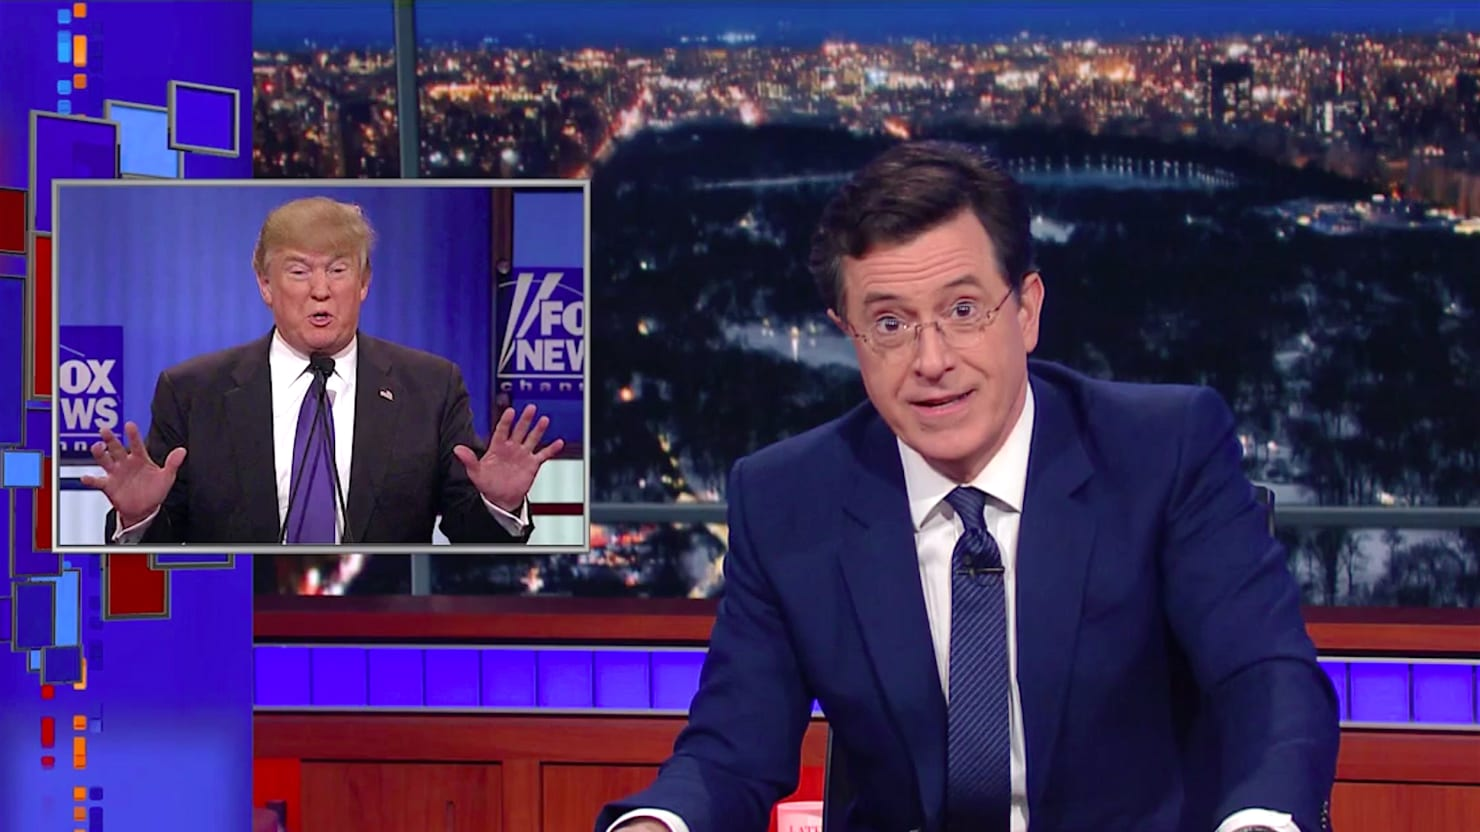 Stephen Colbert Goes Off on Donald Trump's Penis Defense: A 'New Low' in Politics